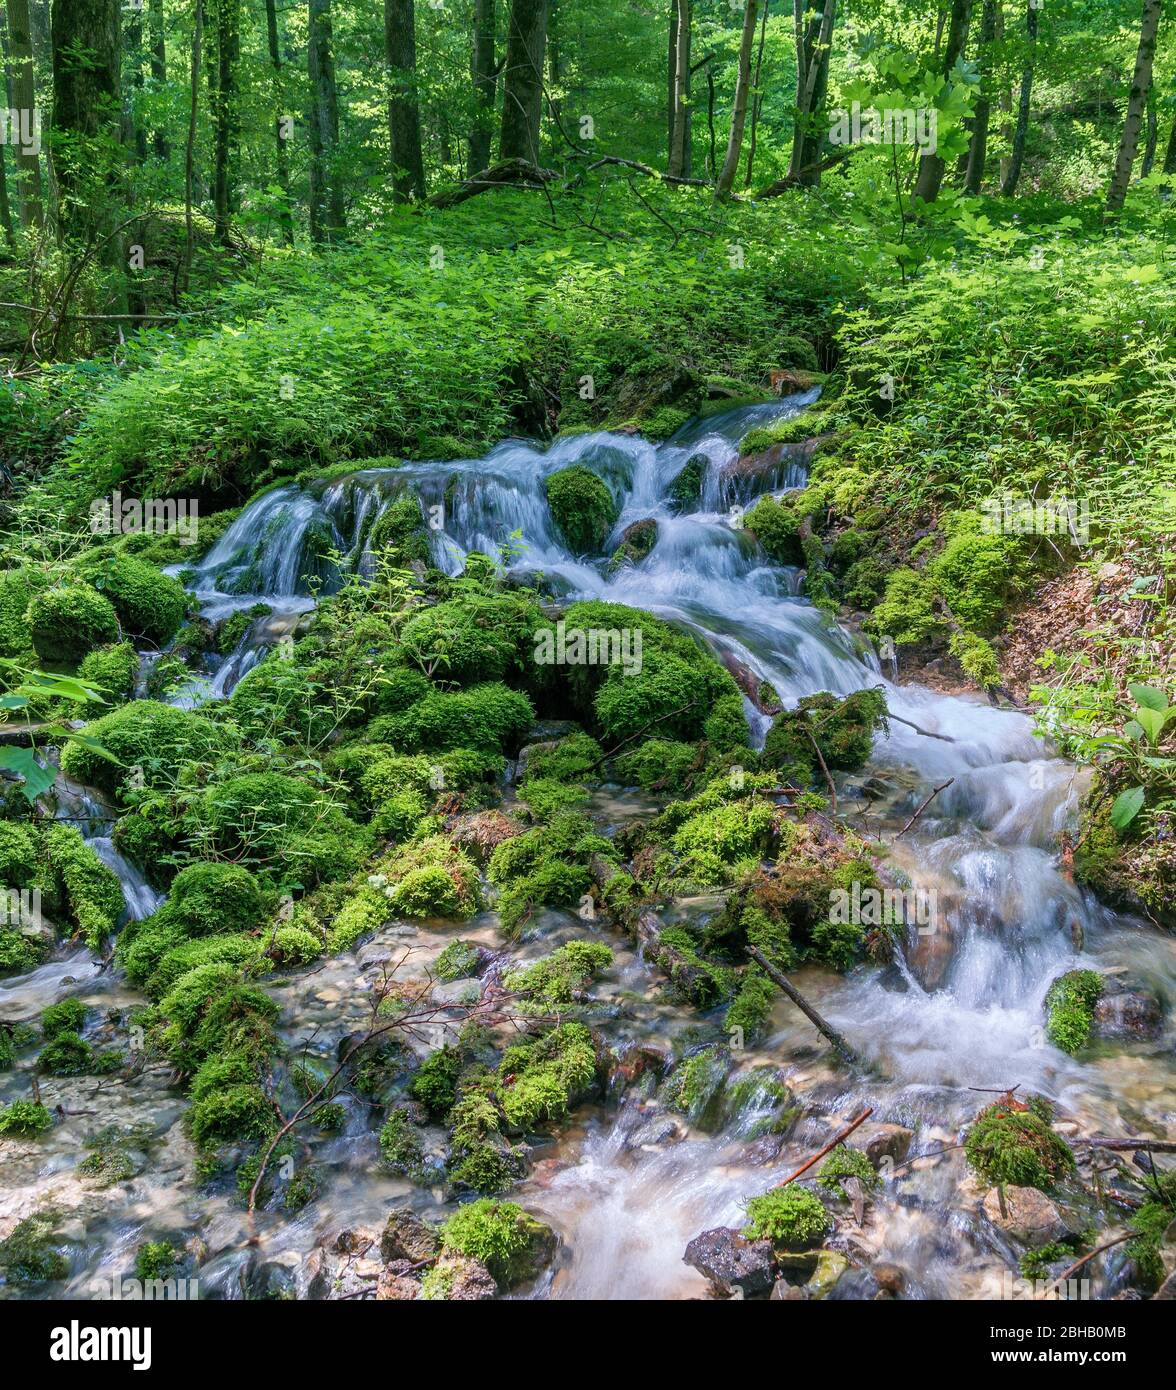 Germany, Baden-Württemberg, Lenningen-Gutenberg, source of water in the Bannwald Donntal near Gutenberg in the biosphere reserve Swabian Alb. The Bannwald belongs to the core zone Donntal and is located in the nature reserve Oberes Lenninger Tal. Stock Photo